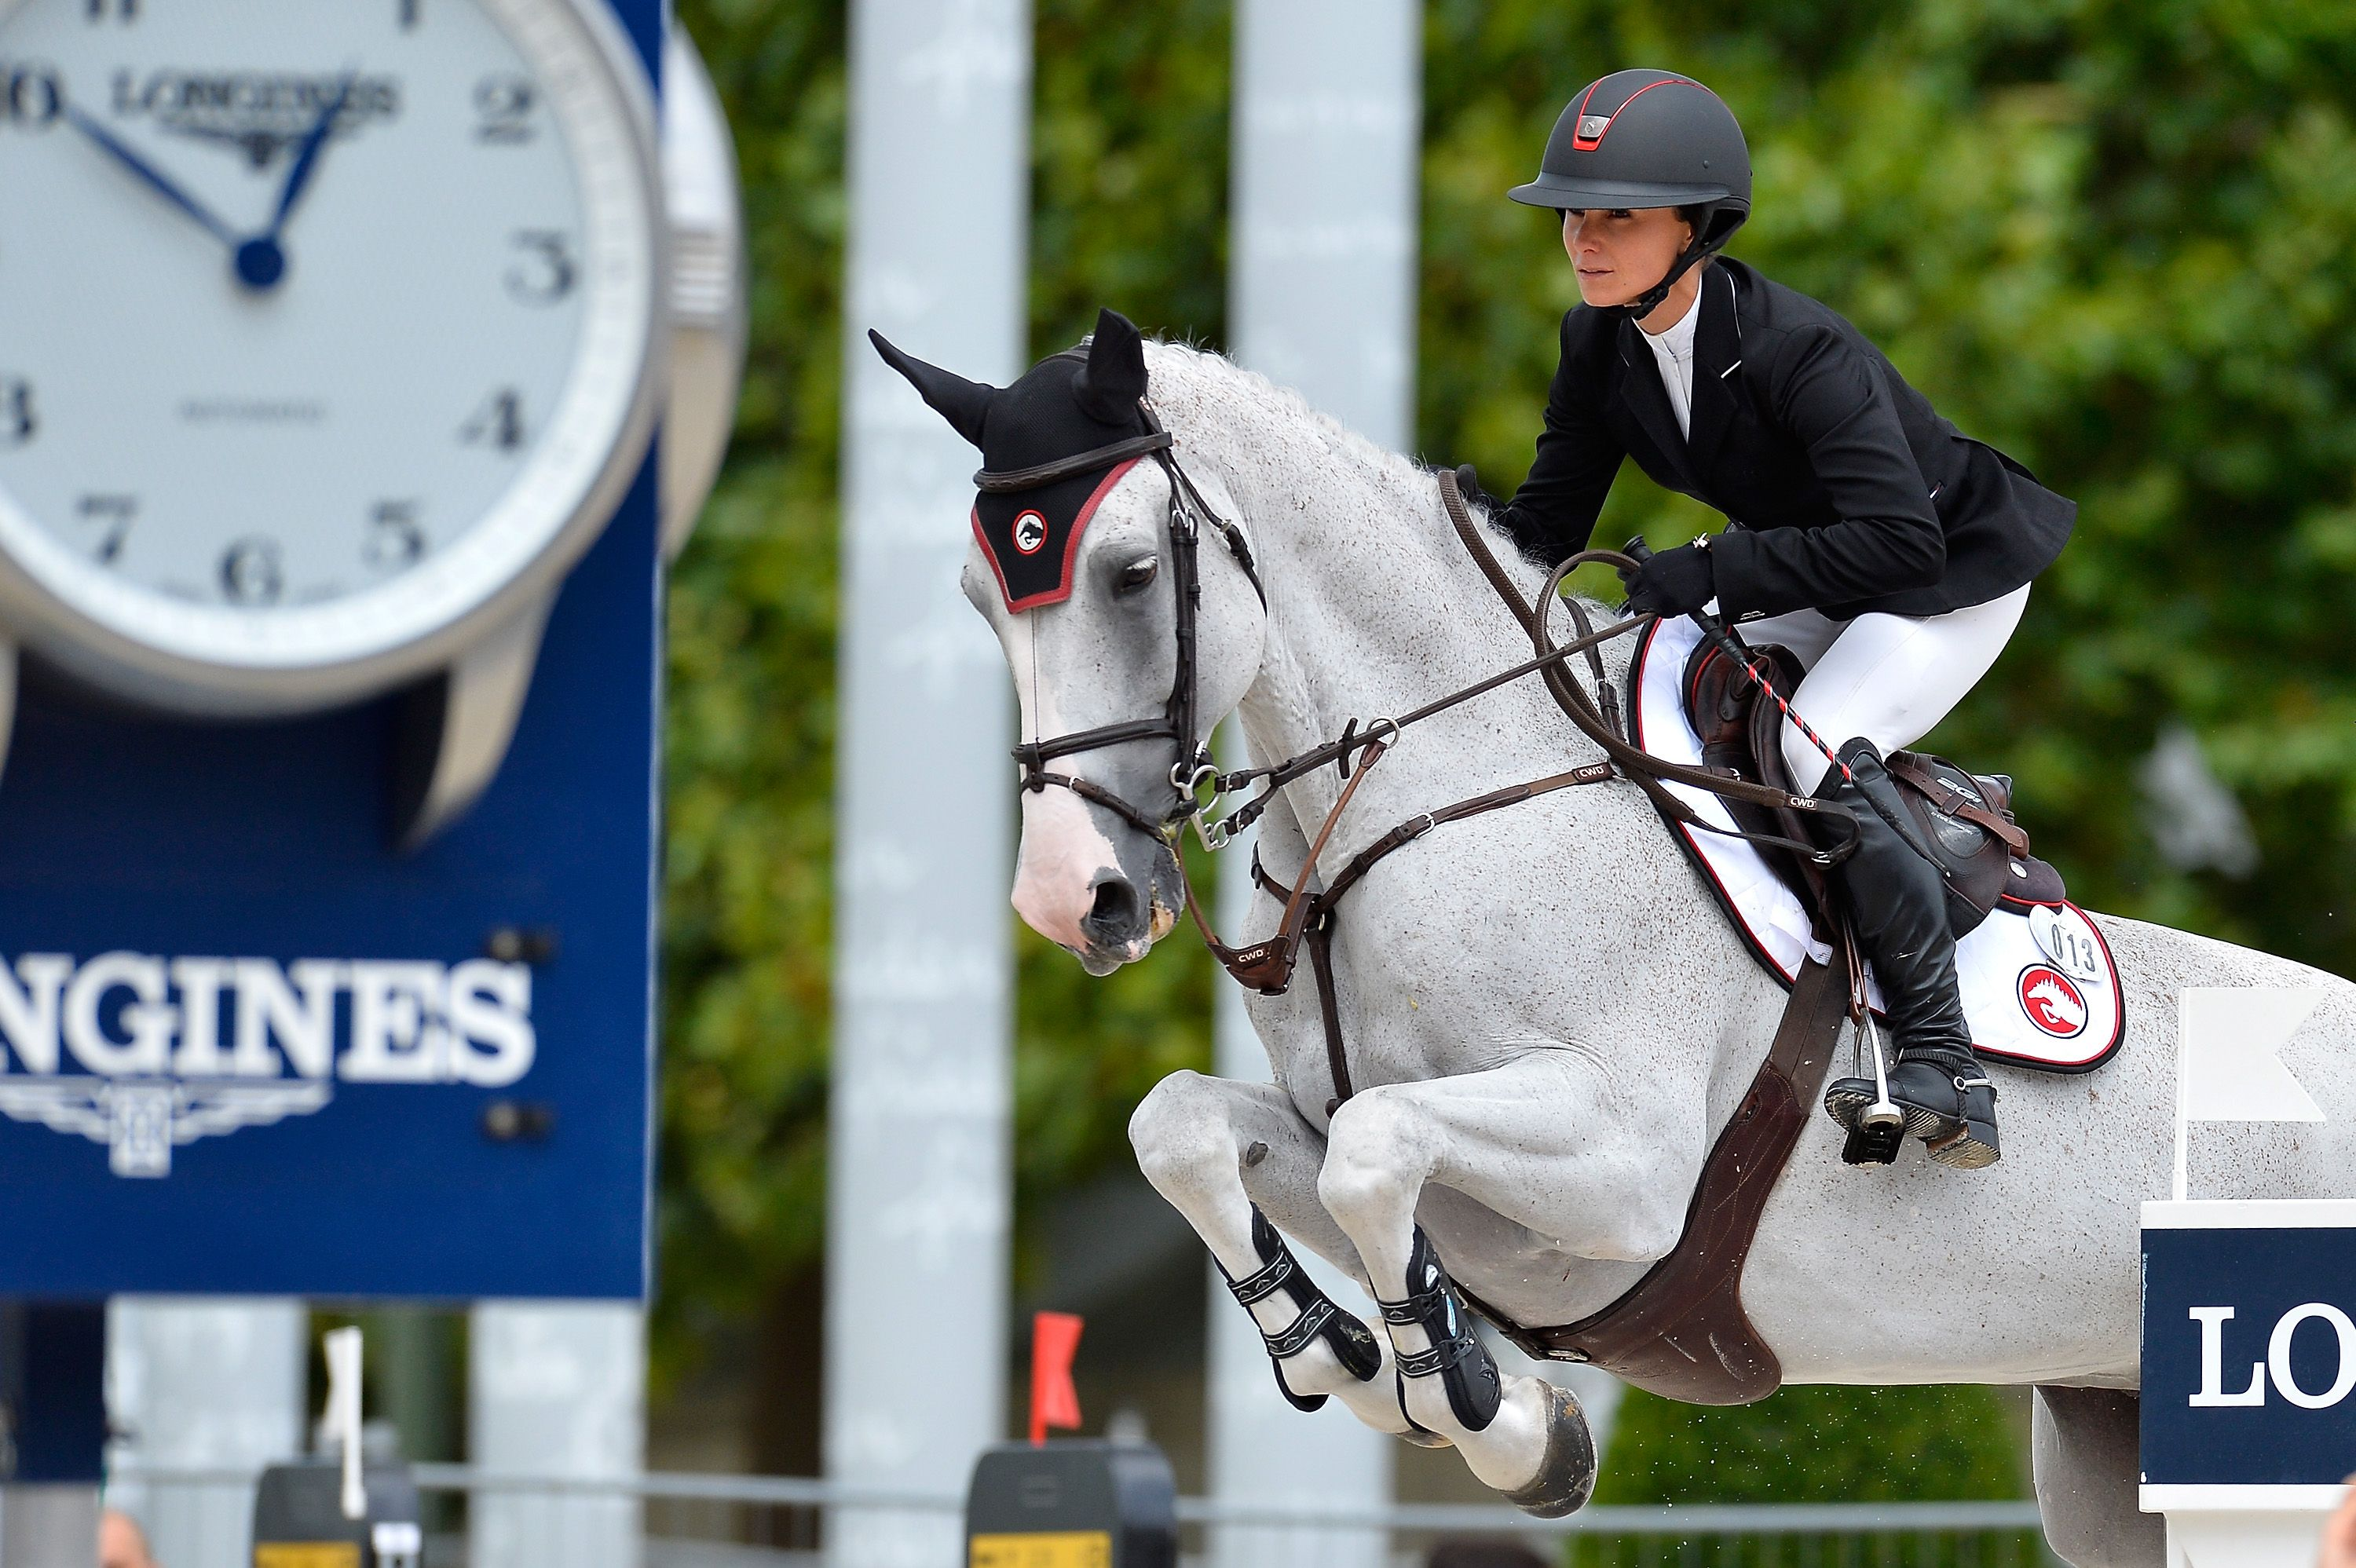 Georgina Bloomberg competes in the 4th Longines Paris Eiffel Jumping Competition in 2017.